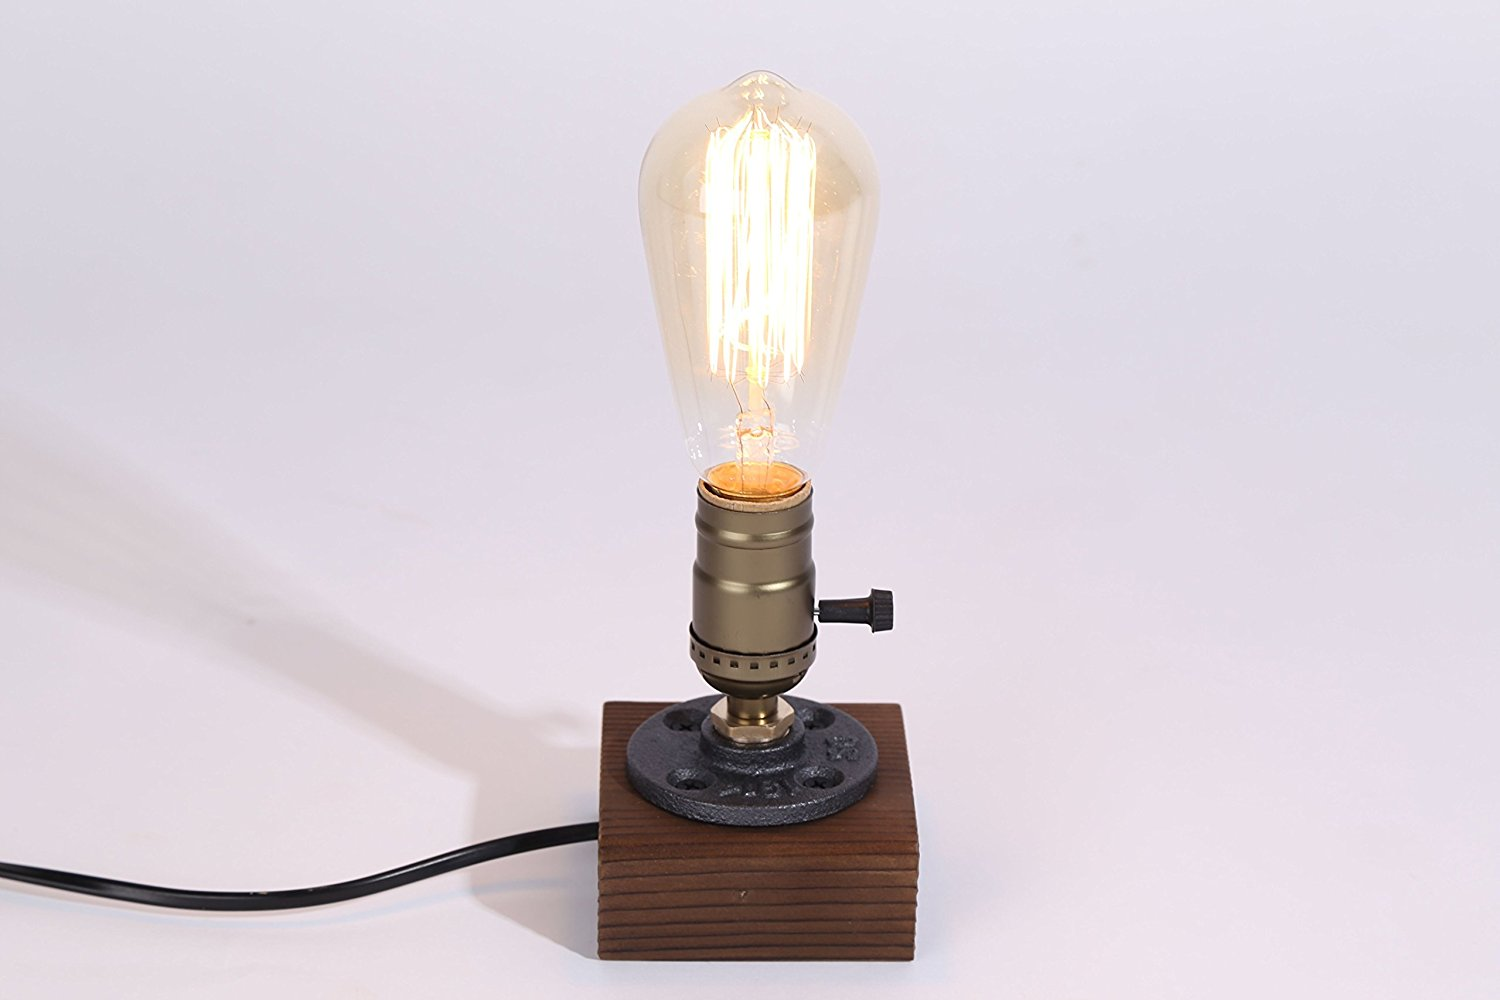 Kiven Vintage Decor Table Light Edison Bulb Wooden Desk Lamp Retro 1930s Home